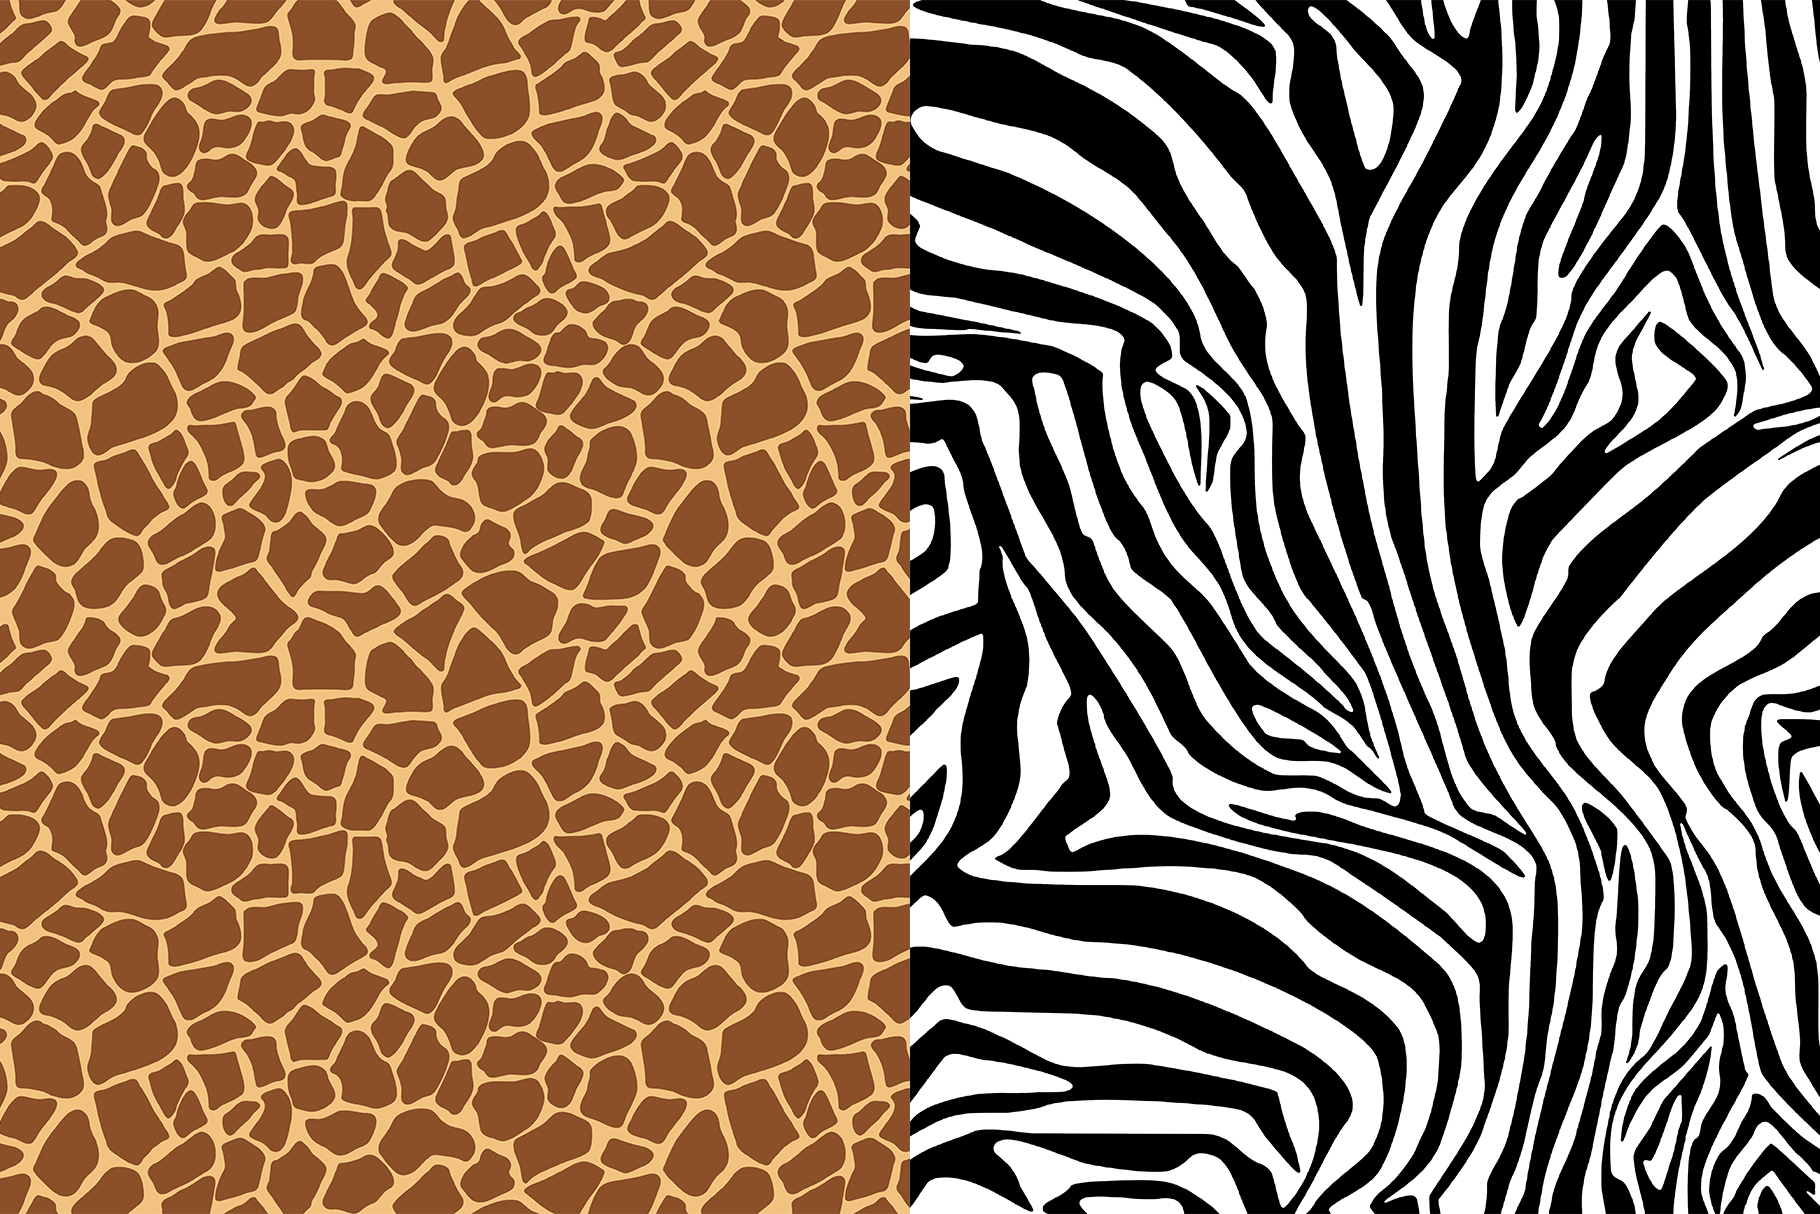 10 African Ethnic Patterns example image 10